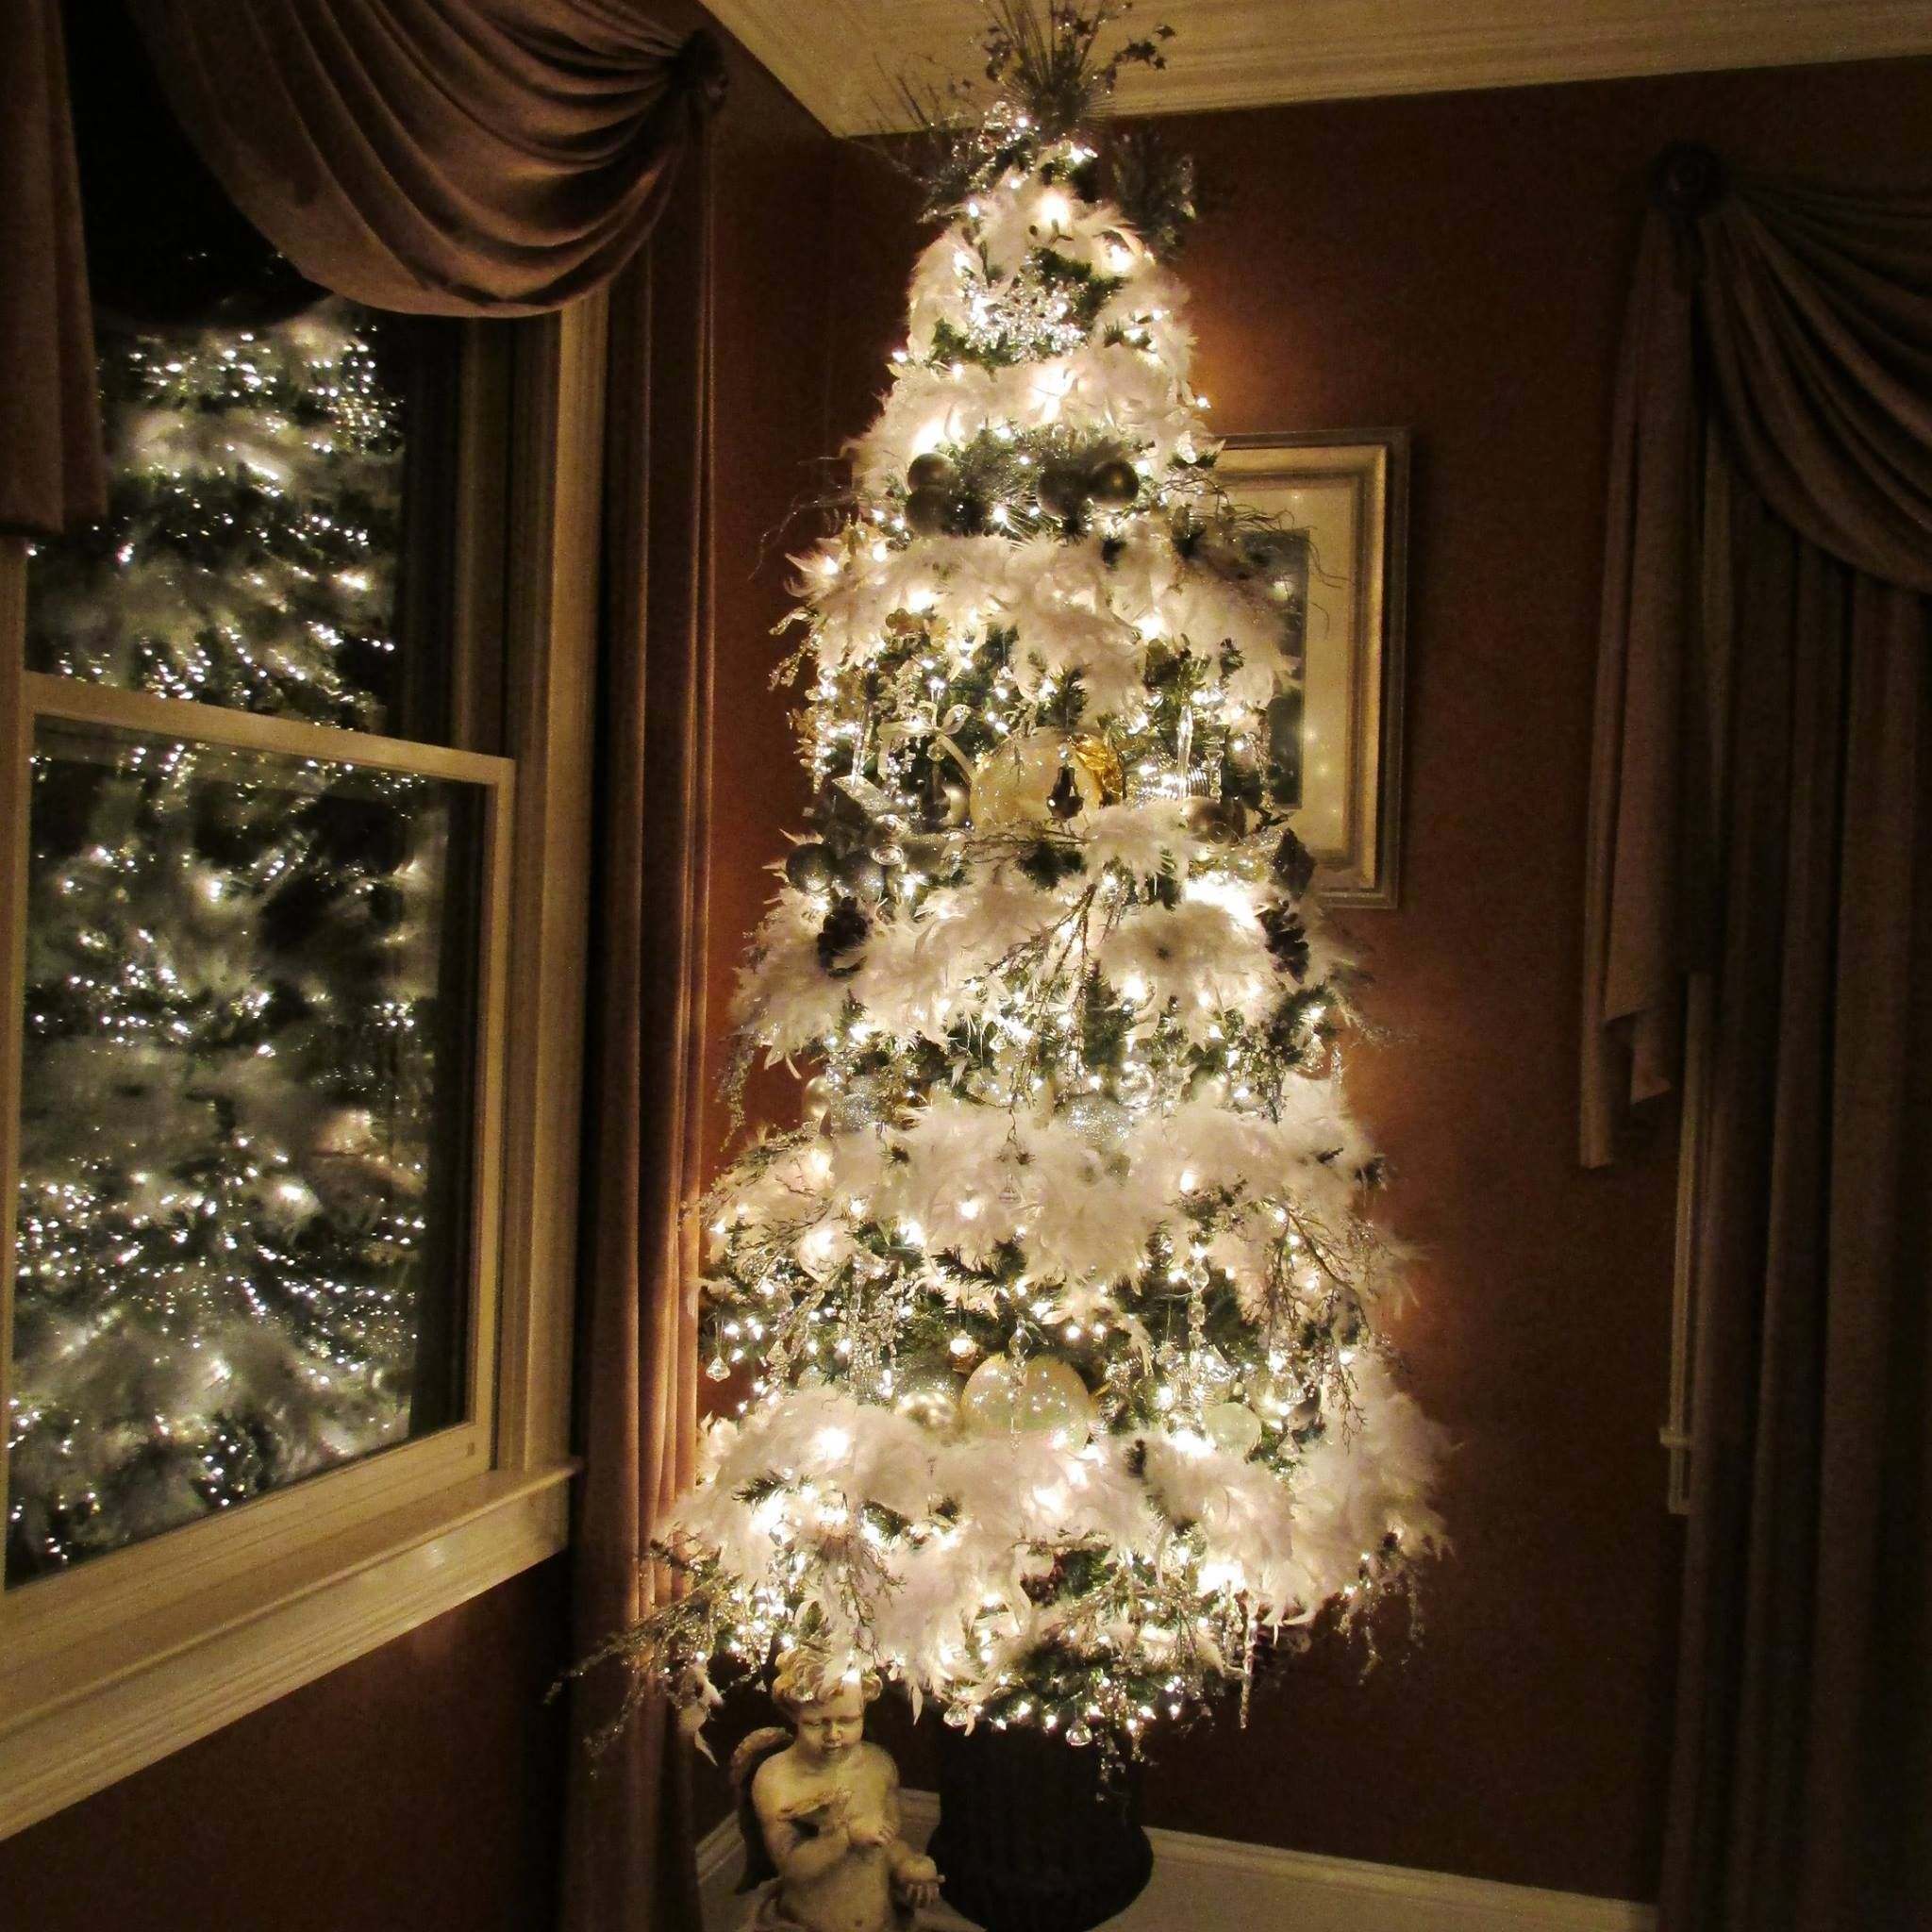 The Dining Room Tree Is Decorated With White Feathers, Large